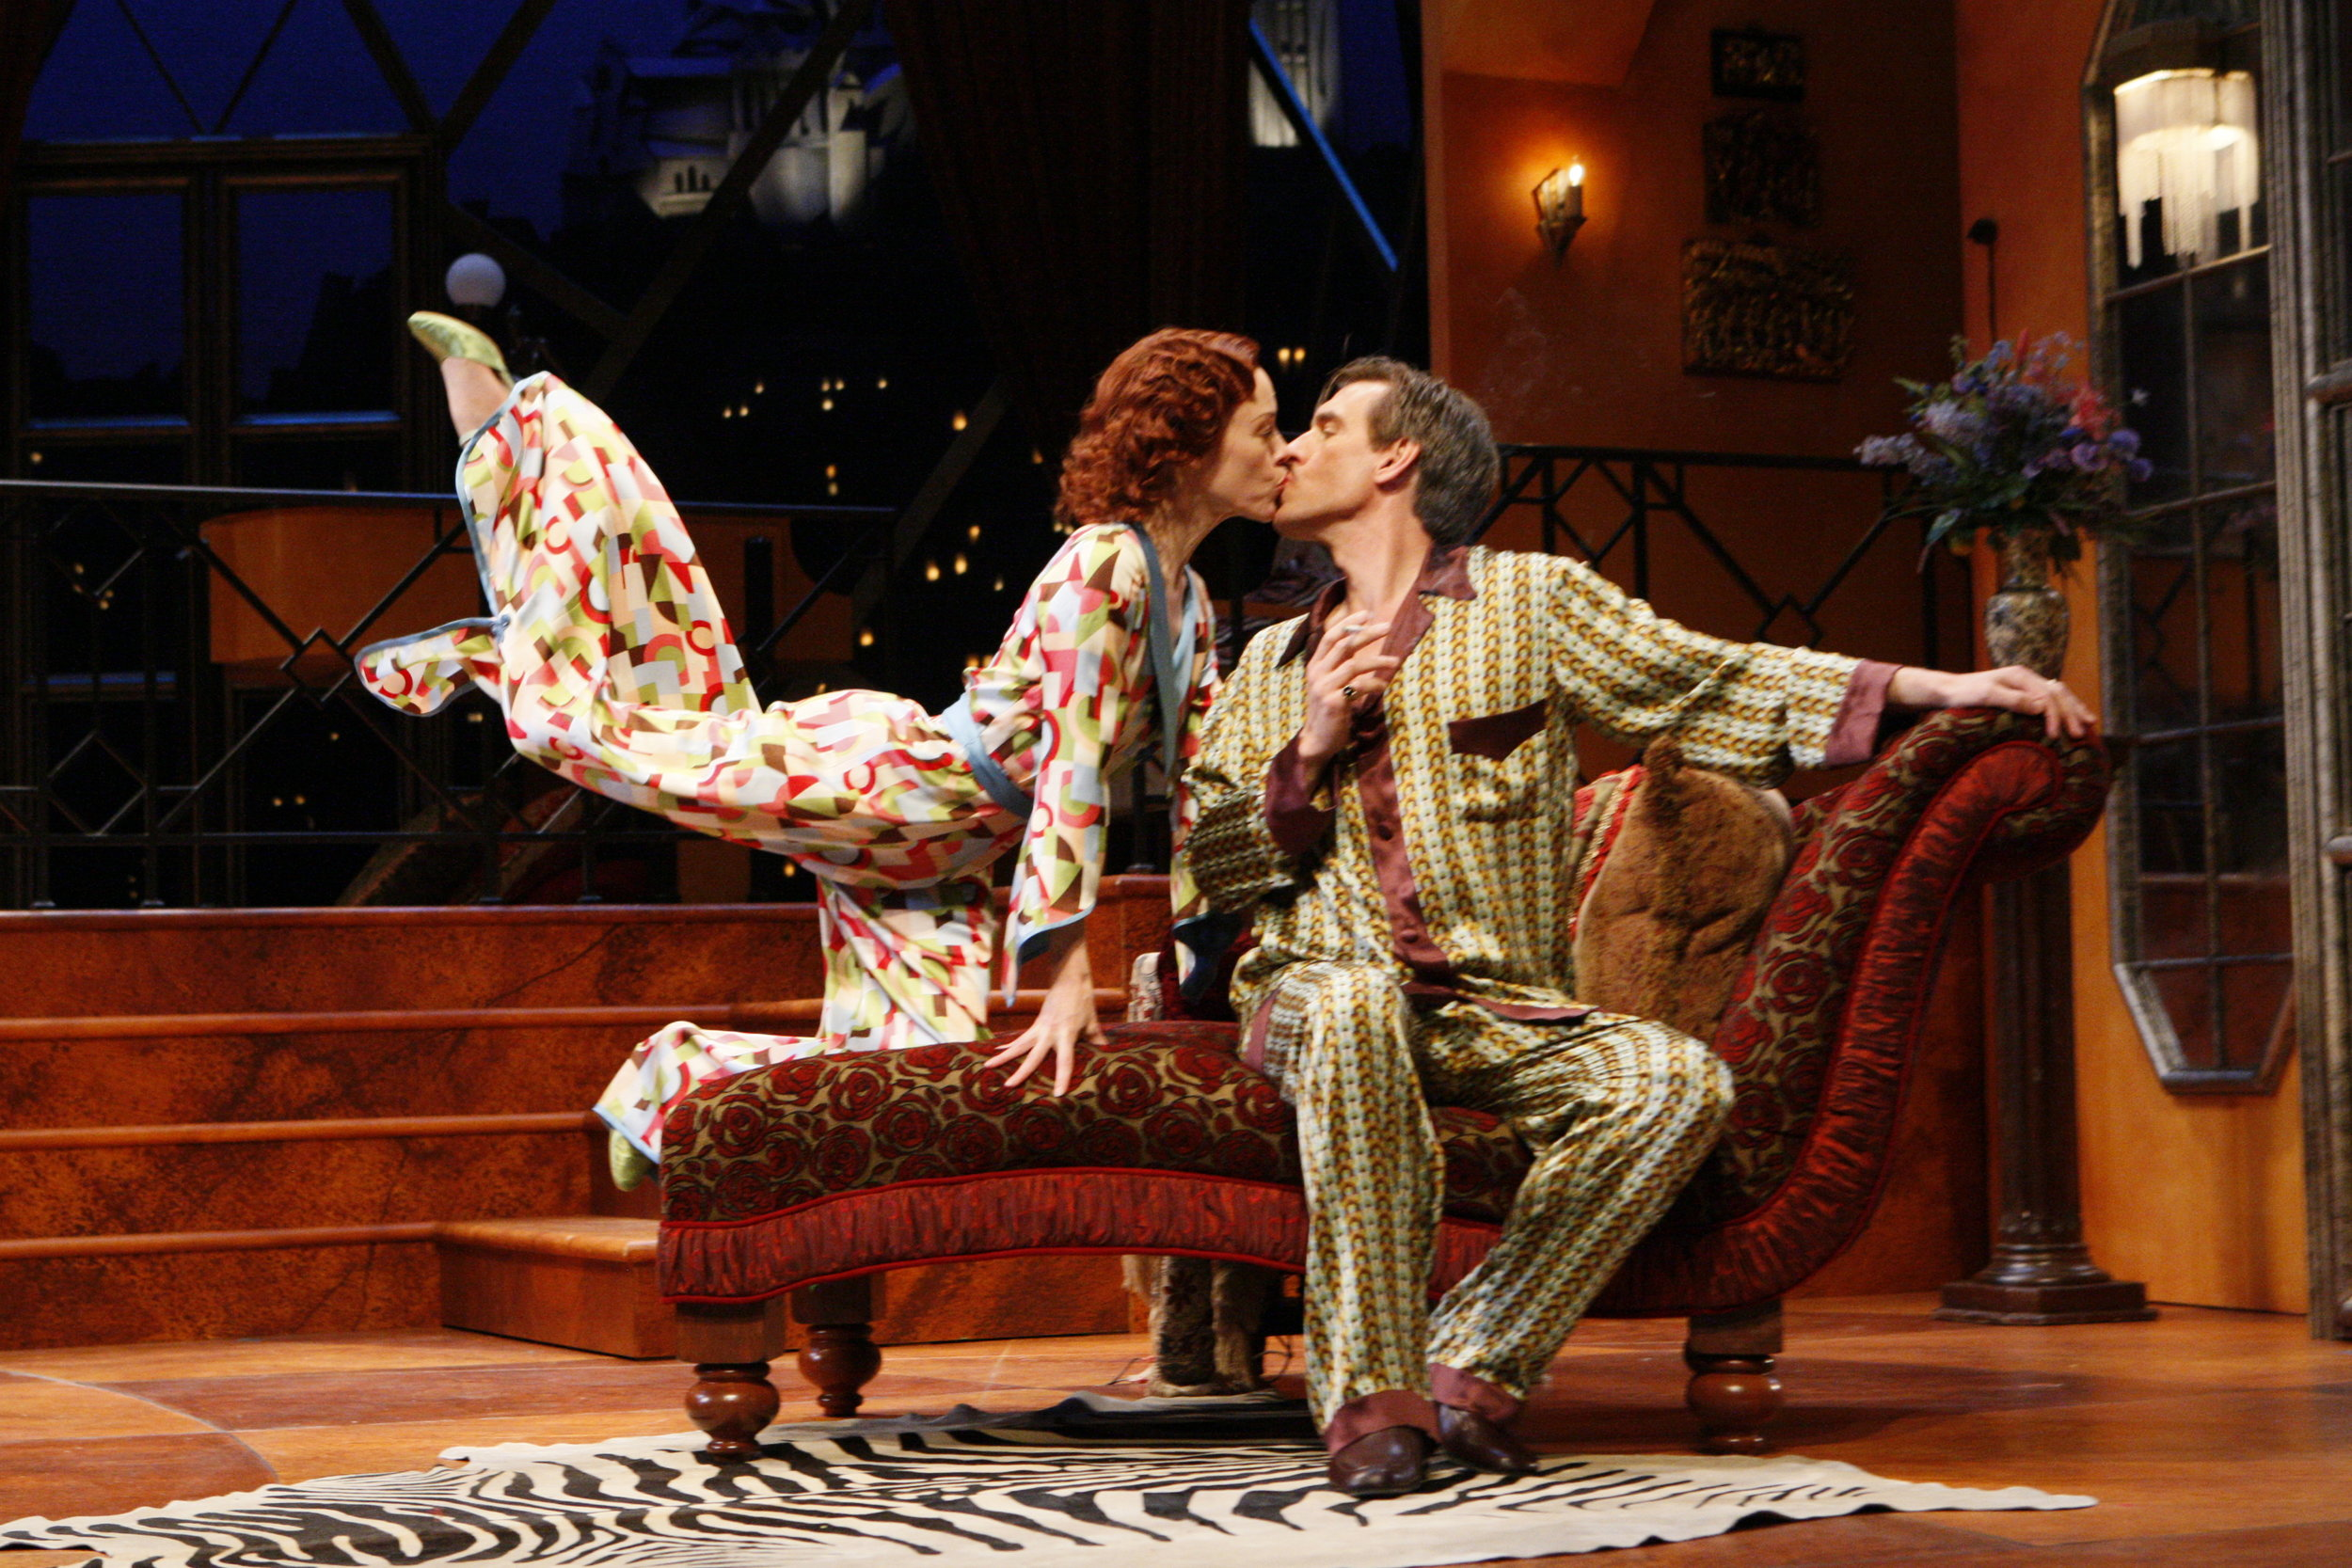 PRIVATE LIVES, Guthrie Theater, Proscenium Stage, 2007